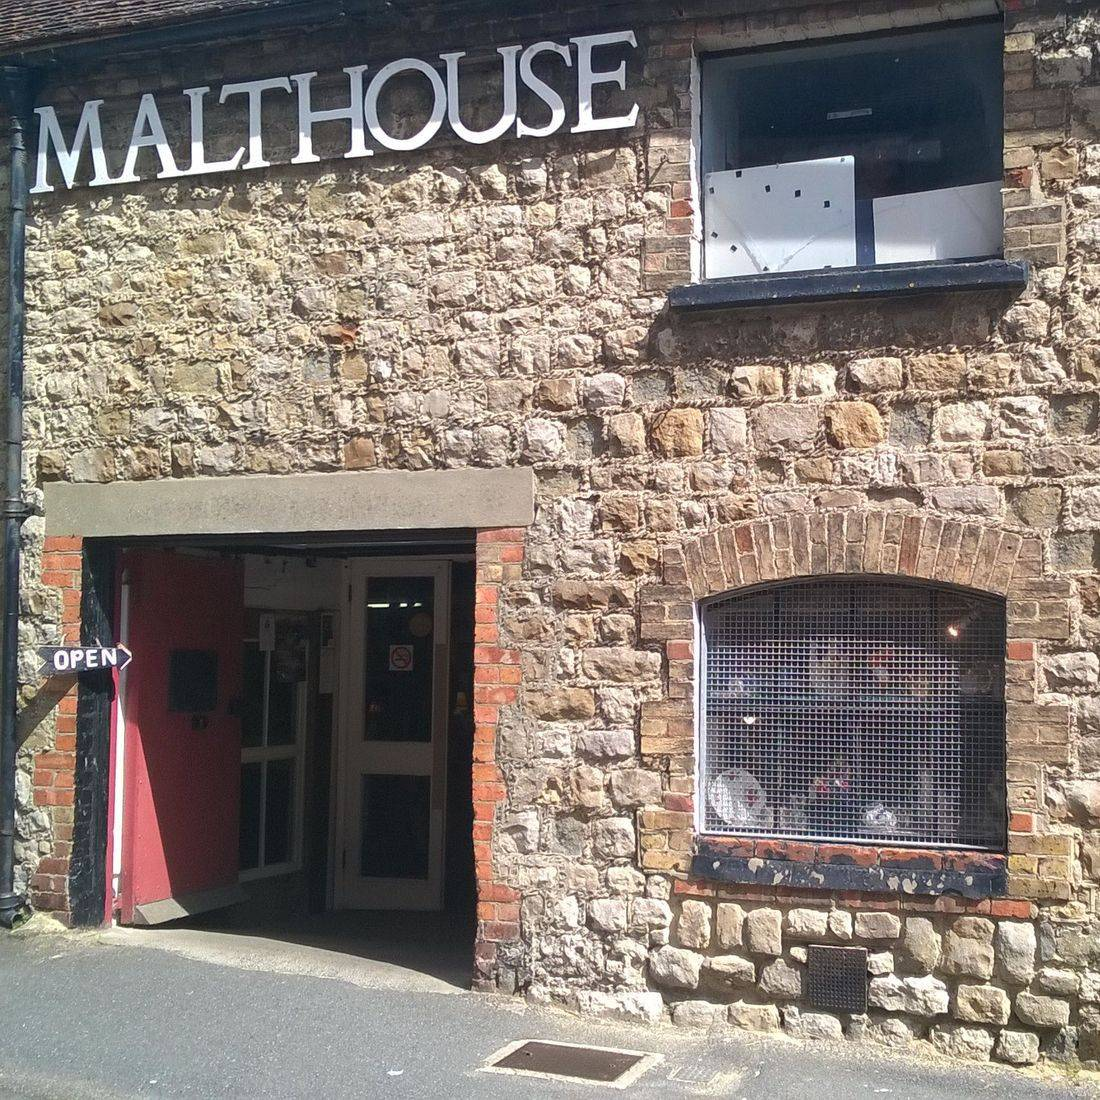 The Malthouse Cafe in Hythe